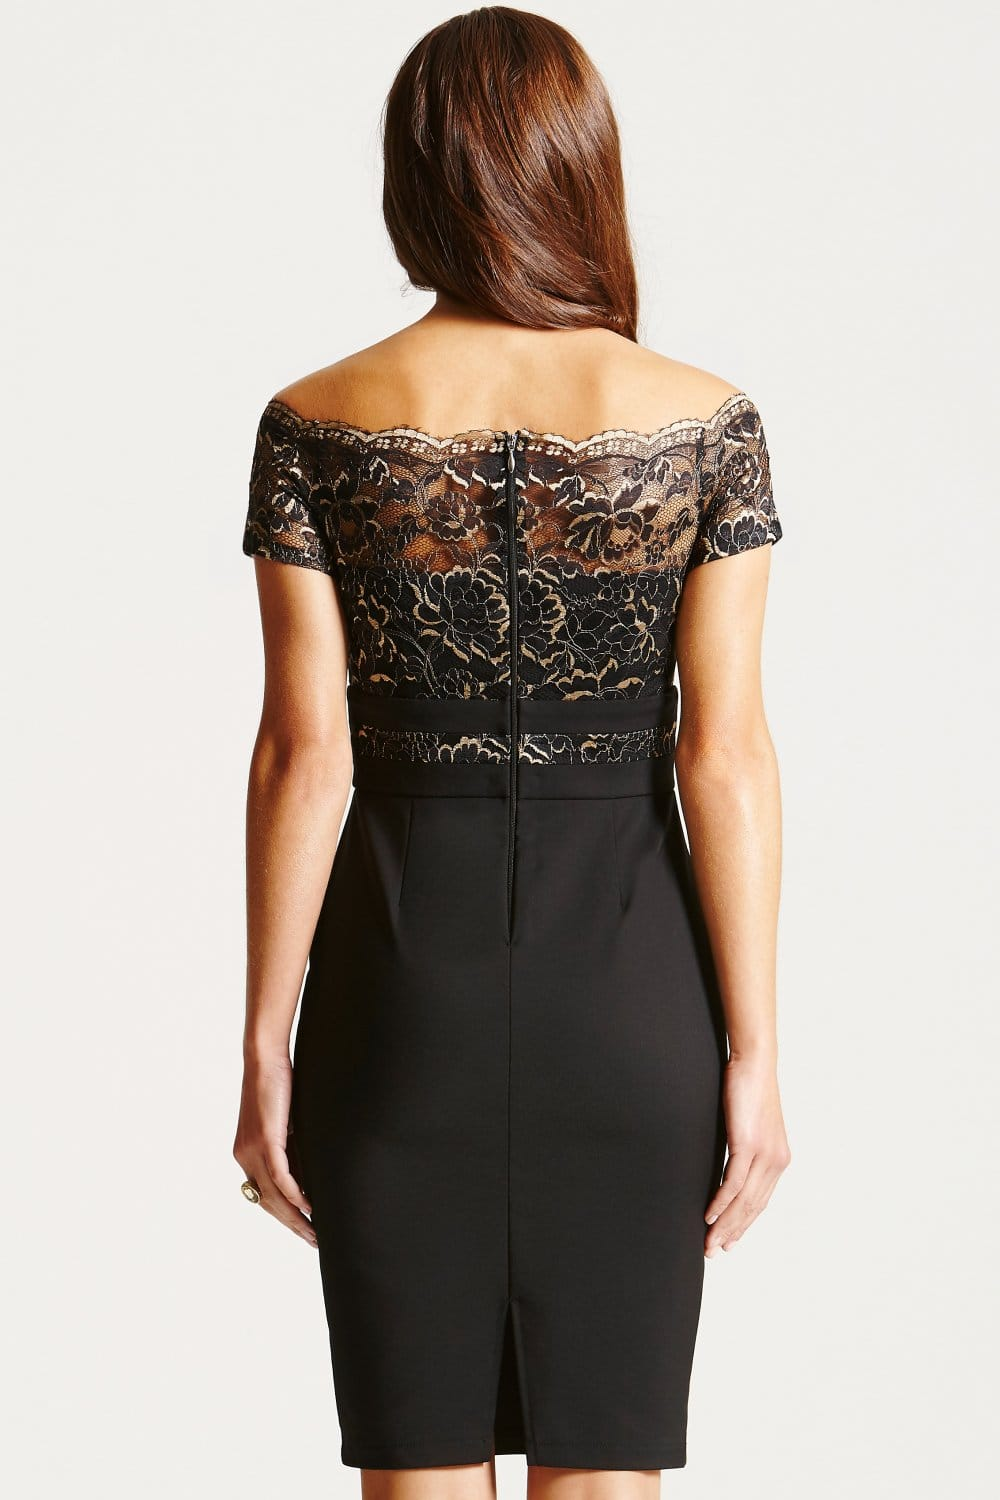 Black Metallic Lace Bardot Dress  from Little Mistress UK